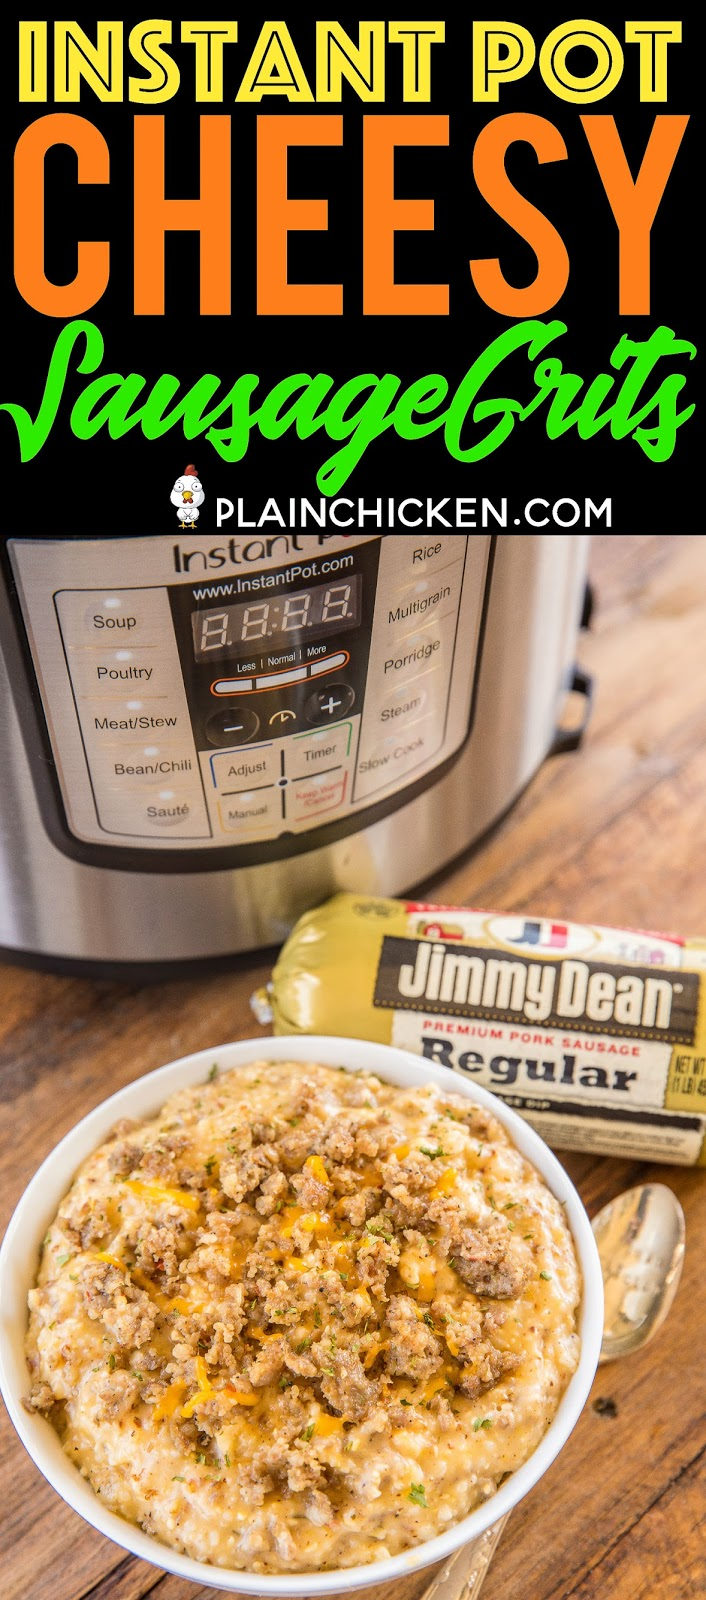 Instant Pot Cheesy Sausage Grits - seriously THE BEST grits ever! Even grits haters will LOVE these easy grits. Jimmy Dean Premium Pork Sausage makes this recipe shine! The unique seasoning blend adds AMAZING flavor to the recipe! Original Jimmy Dean Premium Pork Sausage, chicken broth, milk, Ranch seasoning, garlic powder, cheddar cheese. Great for a quick weekday breakfast, lunch, dinner or weekend brunch. Just add biscuits, eggs and fruit! #ad #instantpot #sausage #breakfast #grits